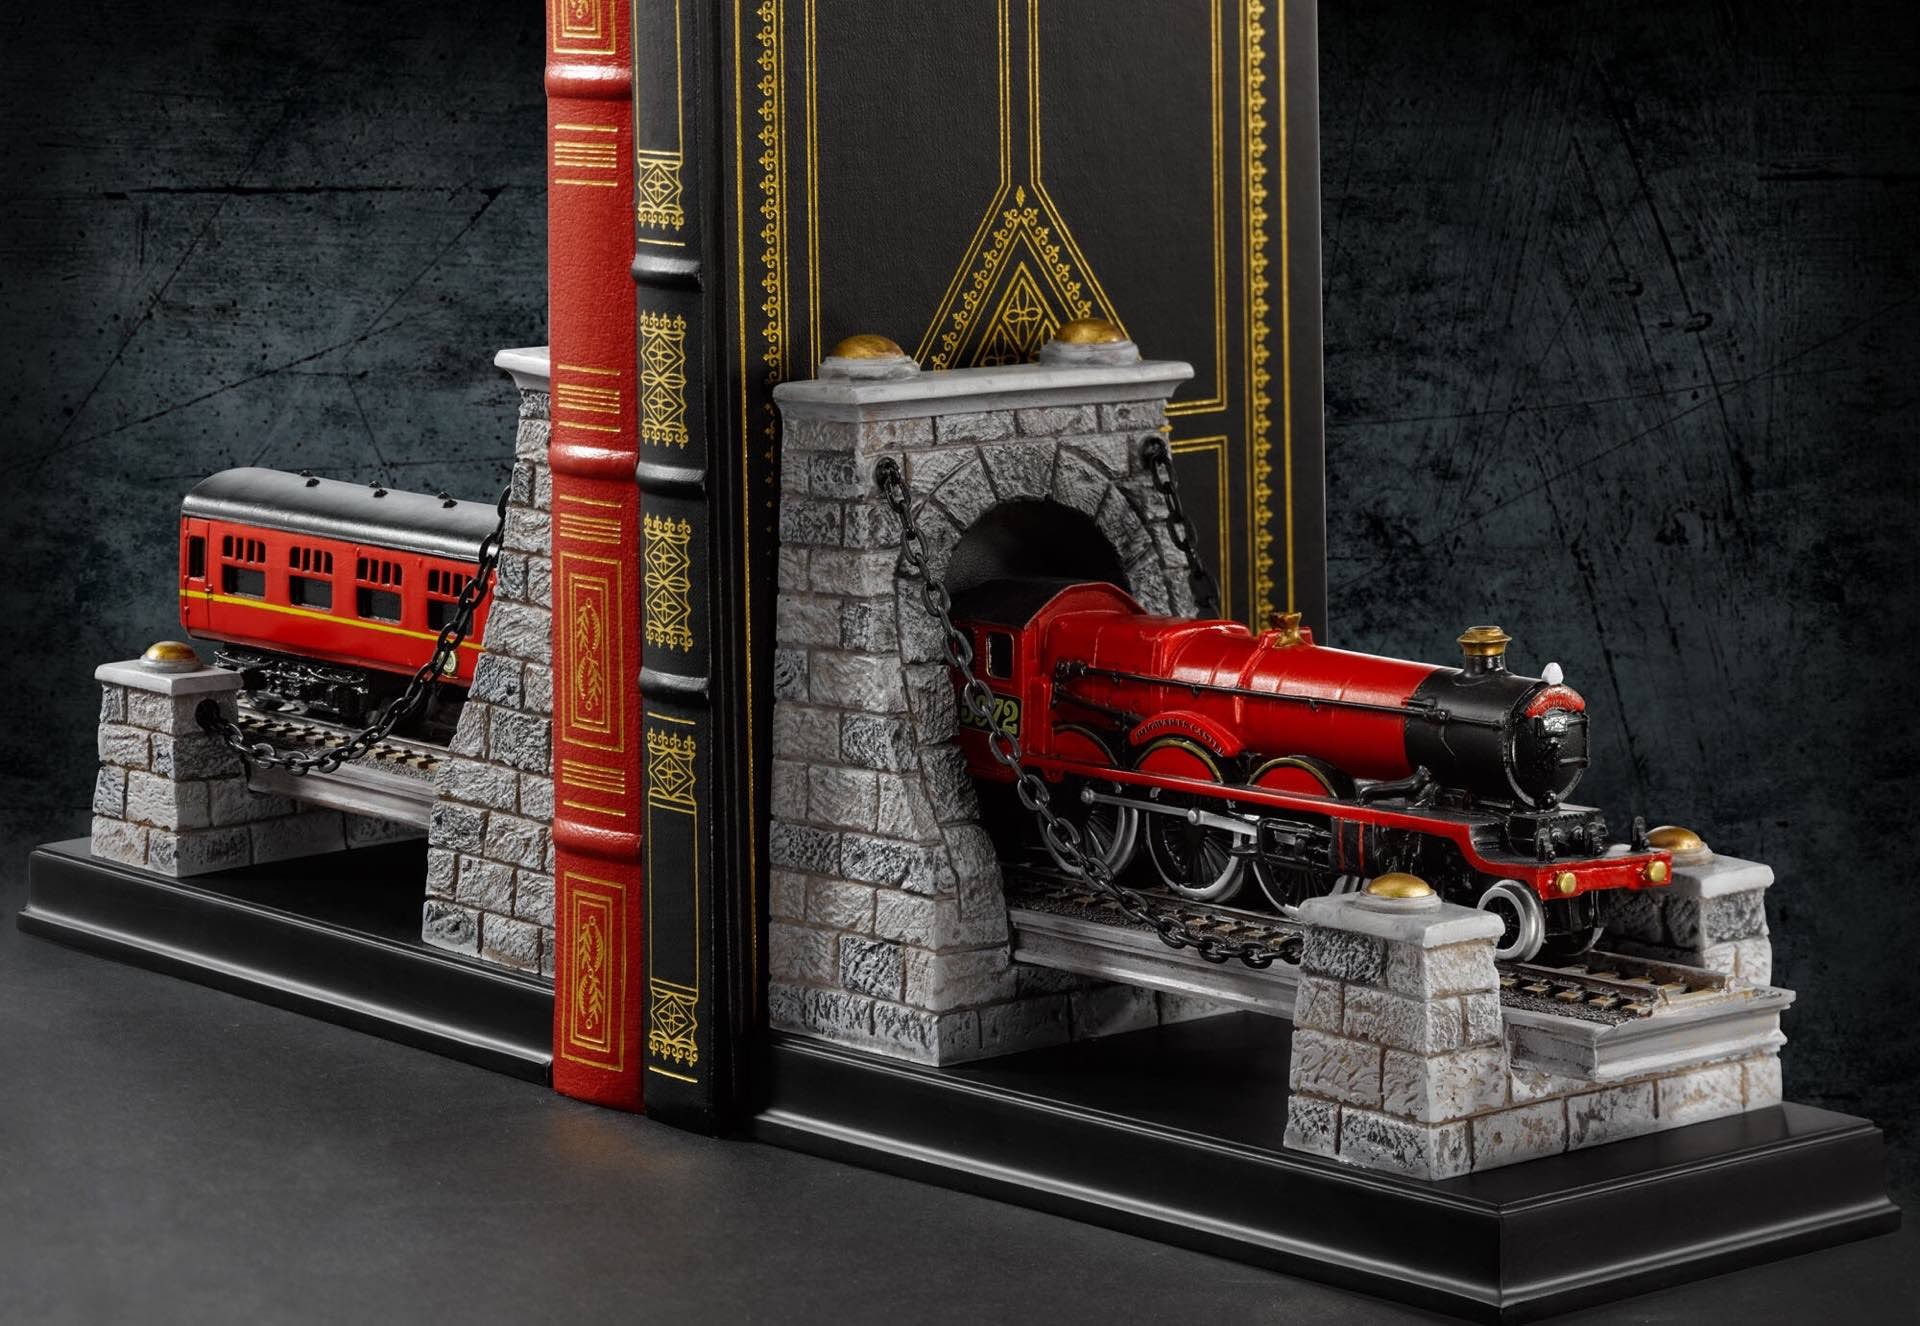 Harry Potter Hogwarts Express bookends. ($95 for the set)